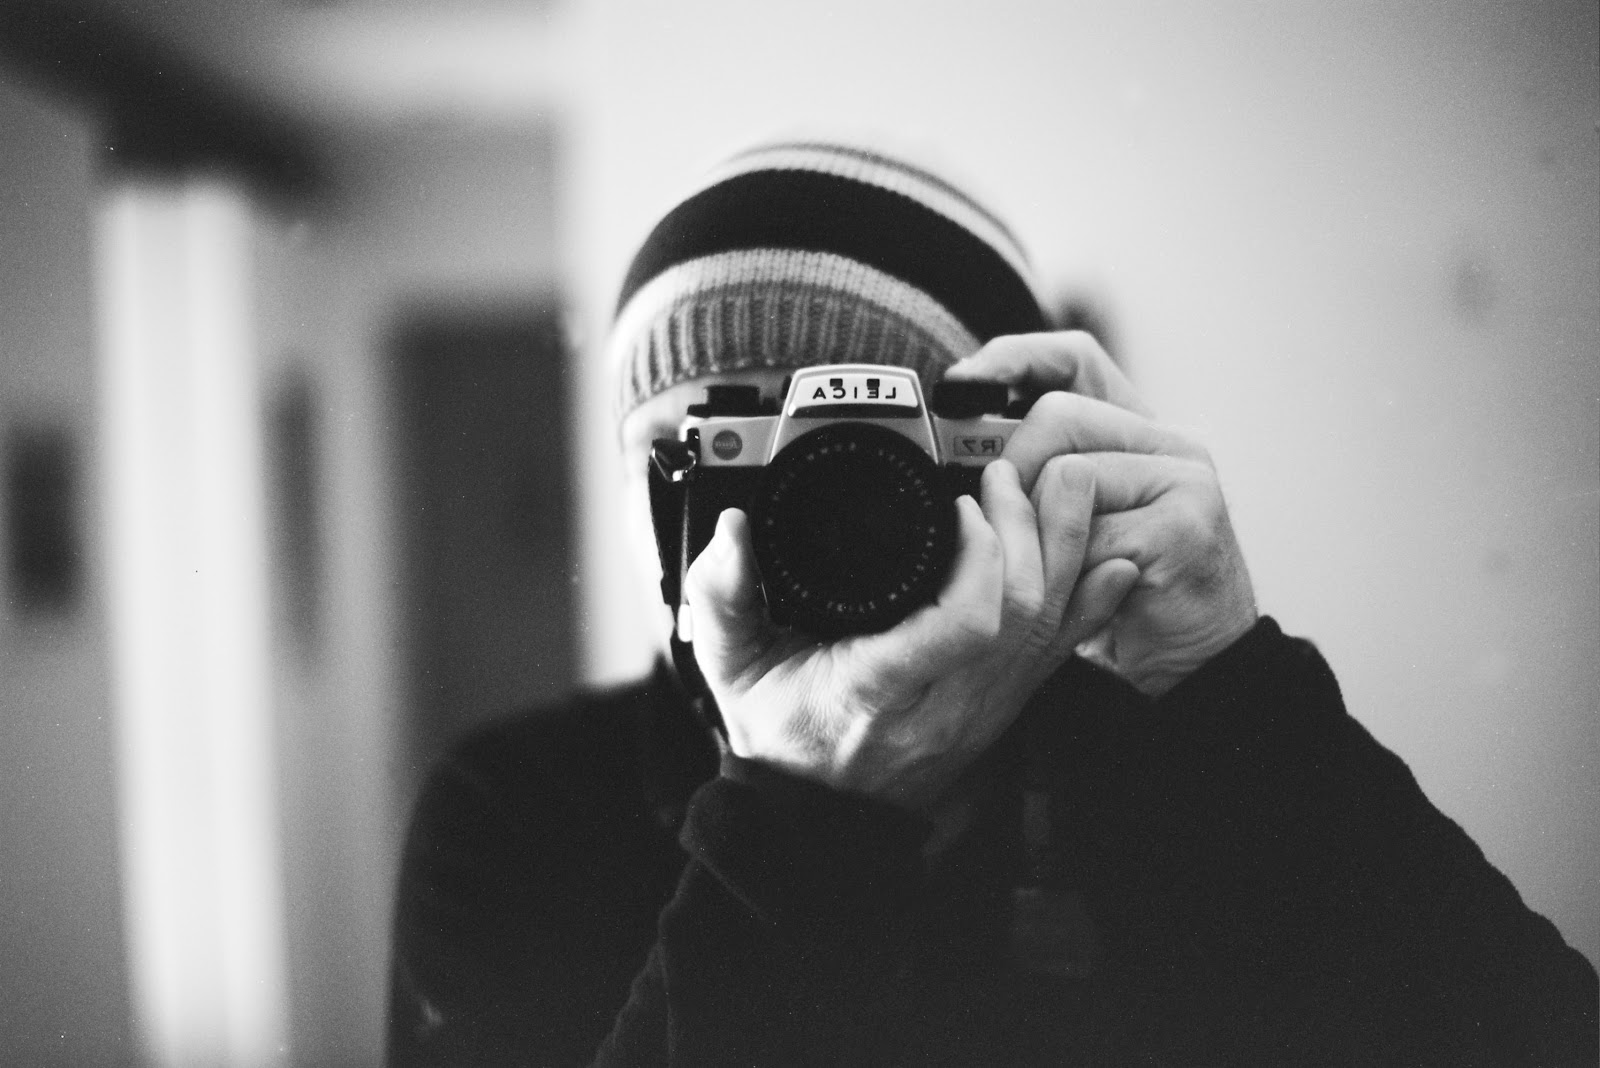 black and white image of person taking a picture with a camera